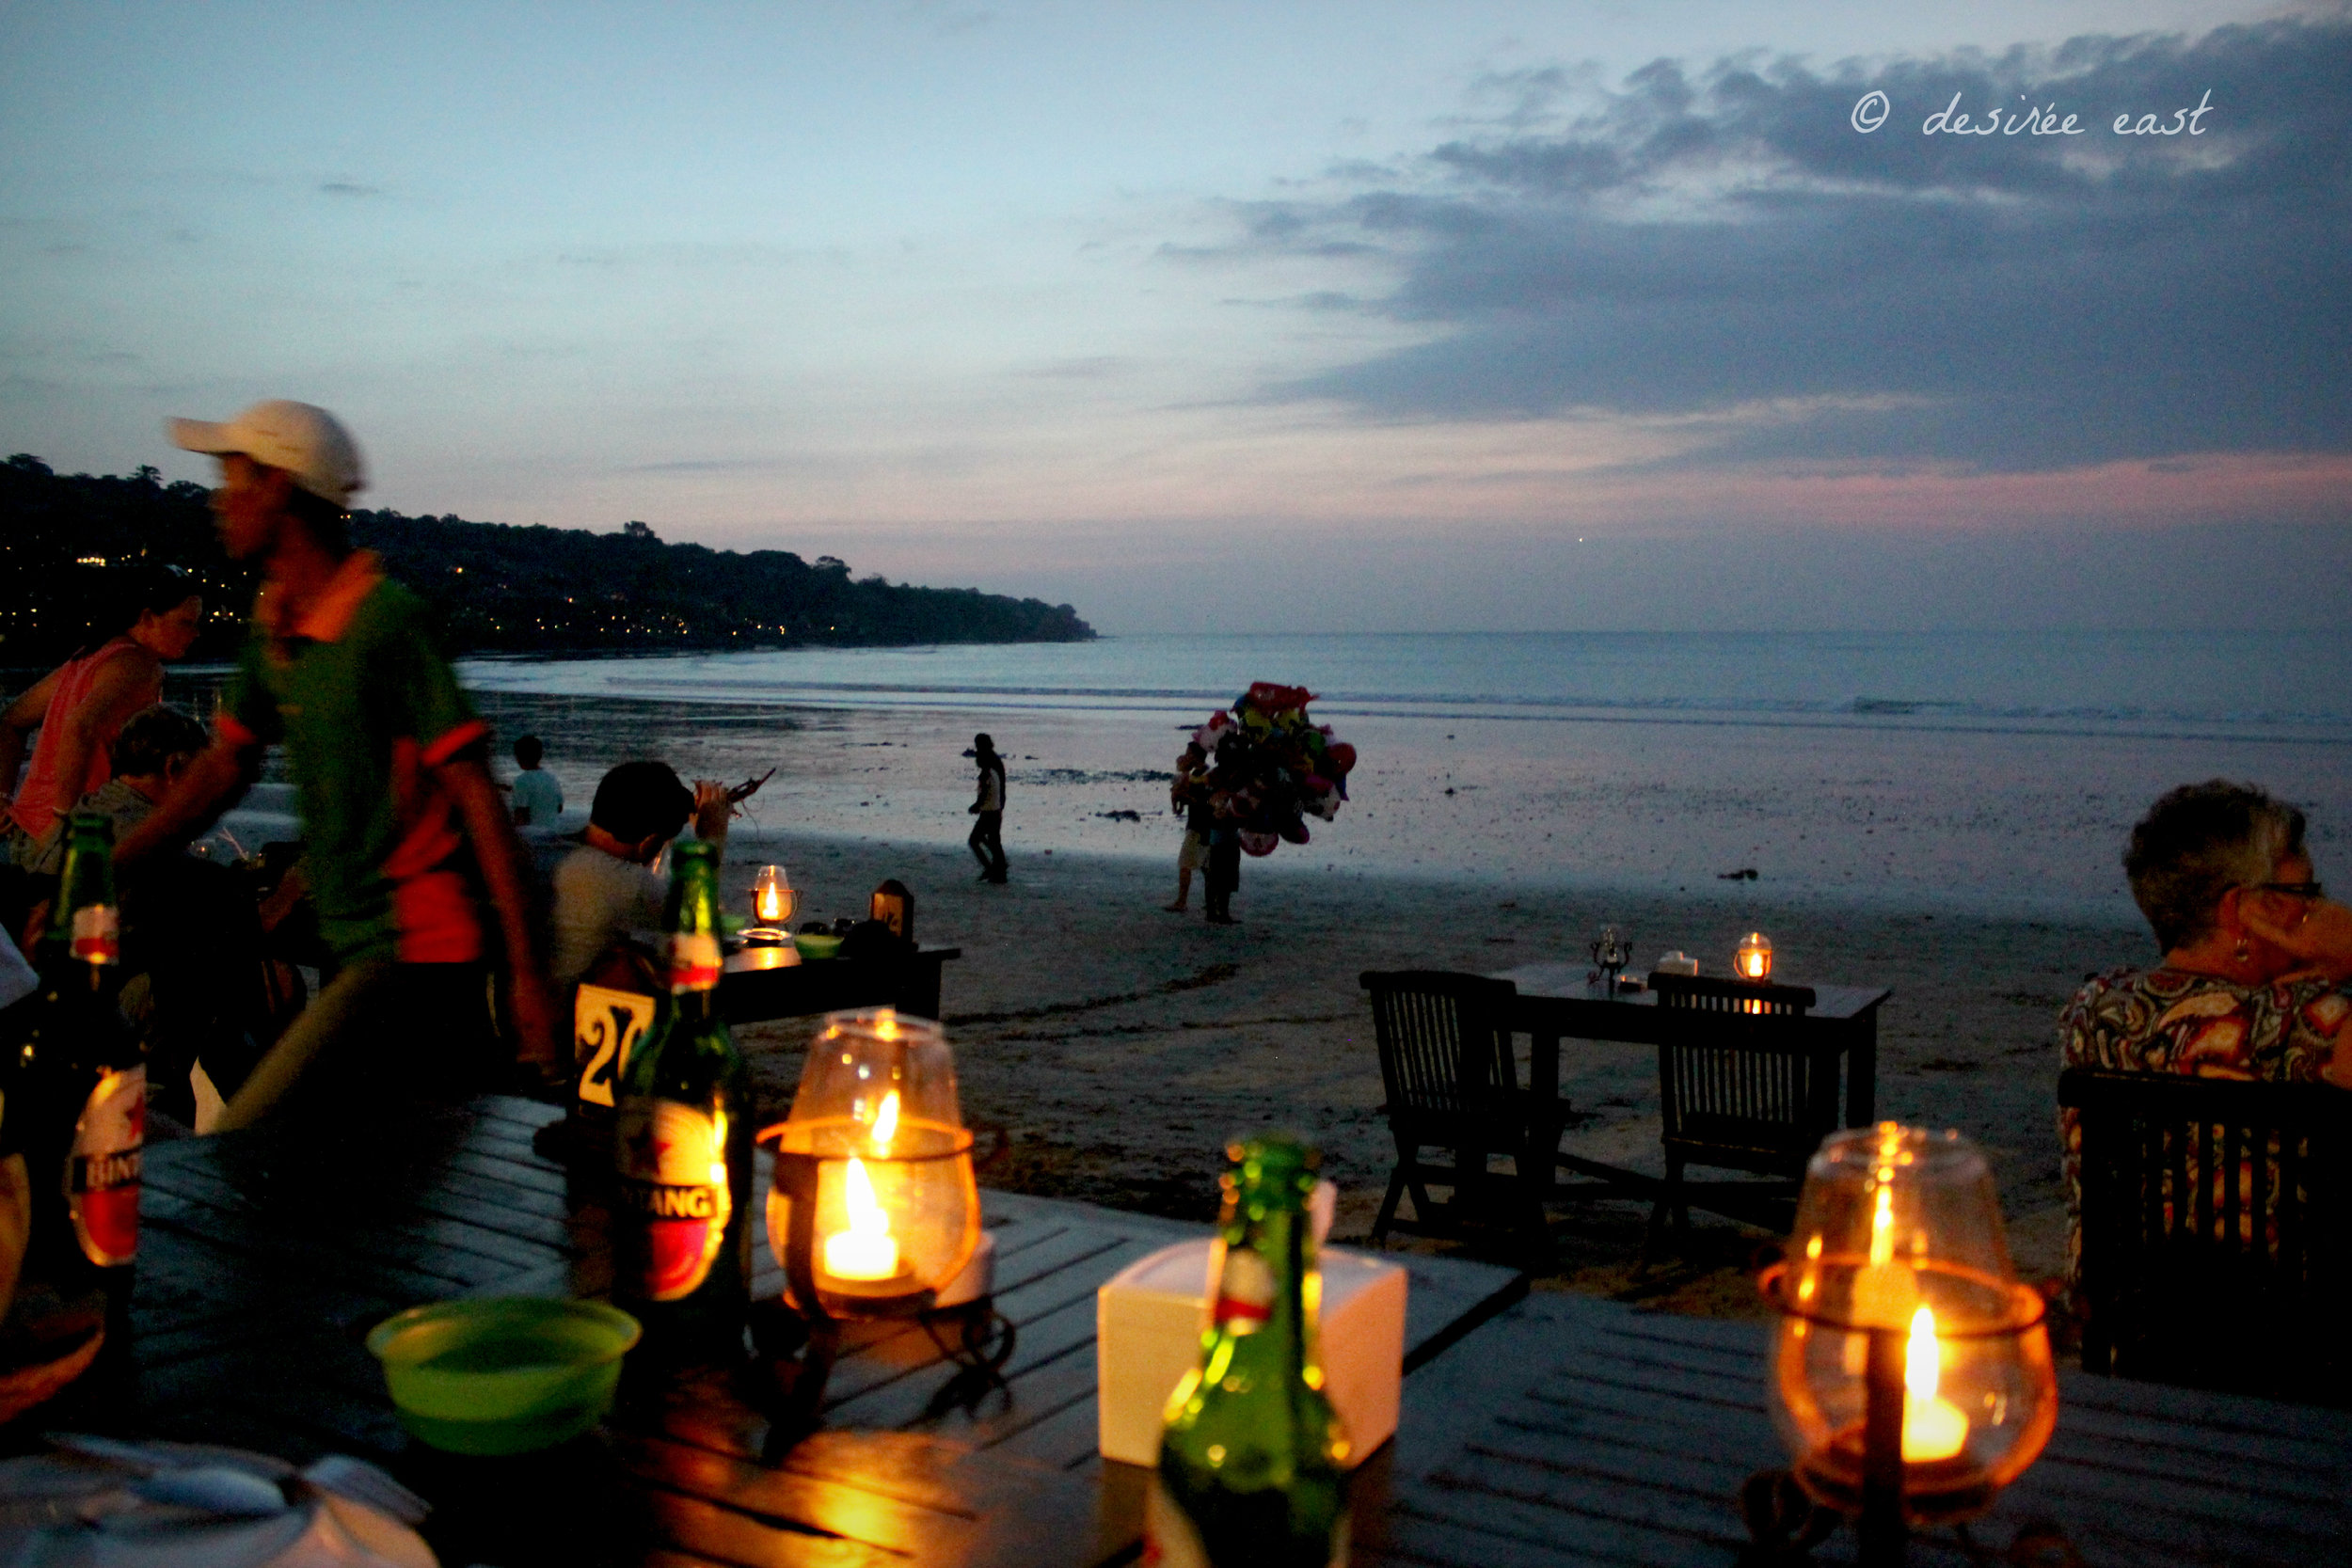 seafood dinner on the beach. jimbaran, bali. photo by desiree east